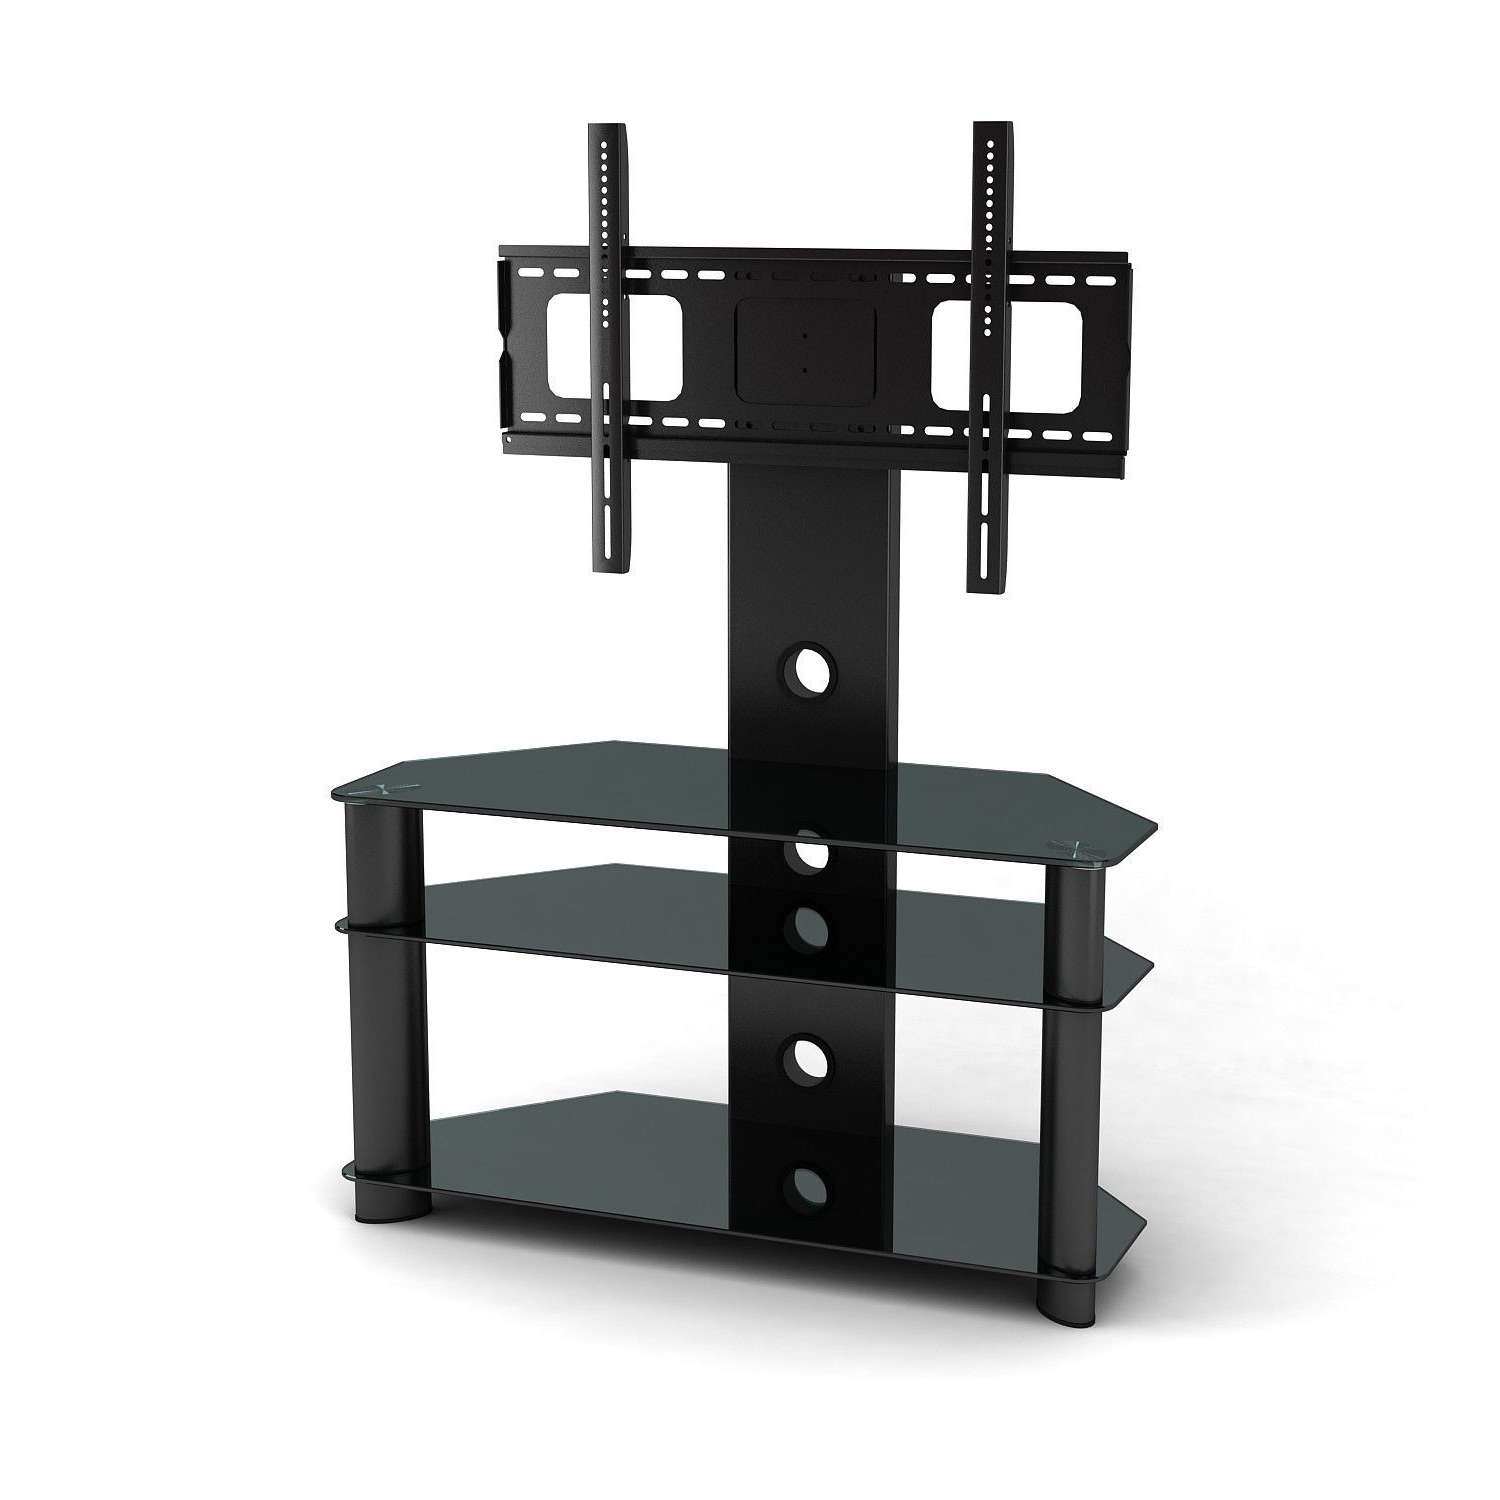 Decoration : Wall Mounted Media Cabinet Flat Tv Stand Bedroom Tv Throughout Wall Mount Adjustable Tv Stands (View 6 of 20)